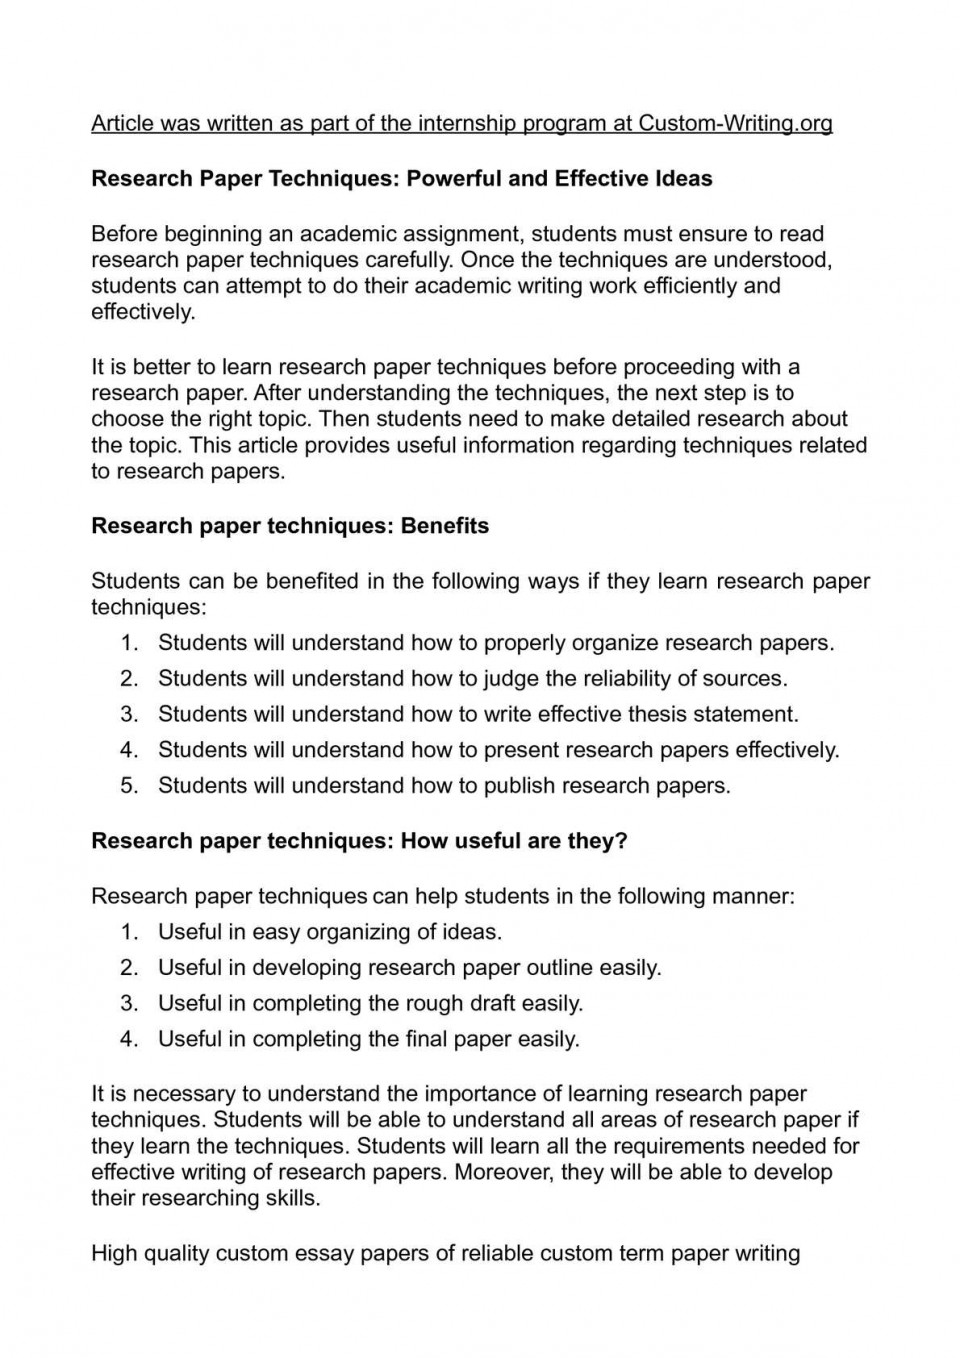 003 Ideas For Research Paper Fascinating Papers In Computer Science Middle School Topic High 960